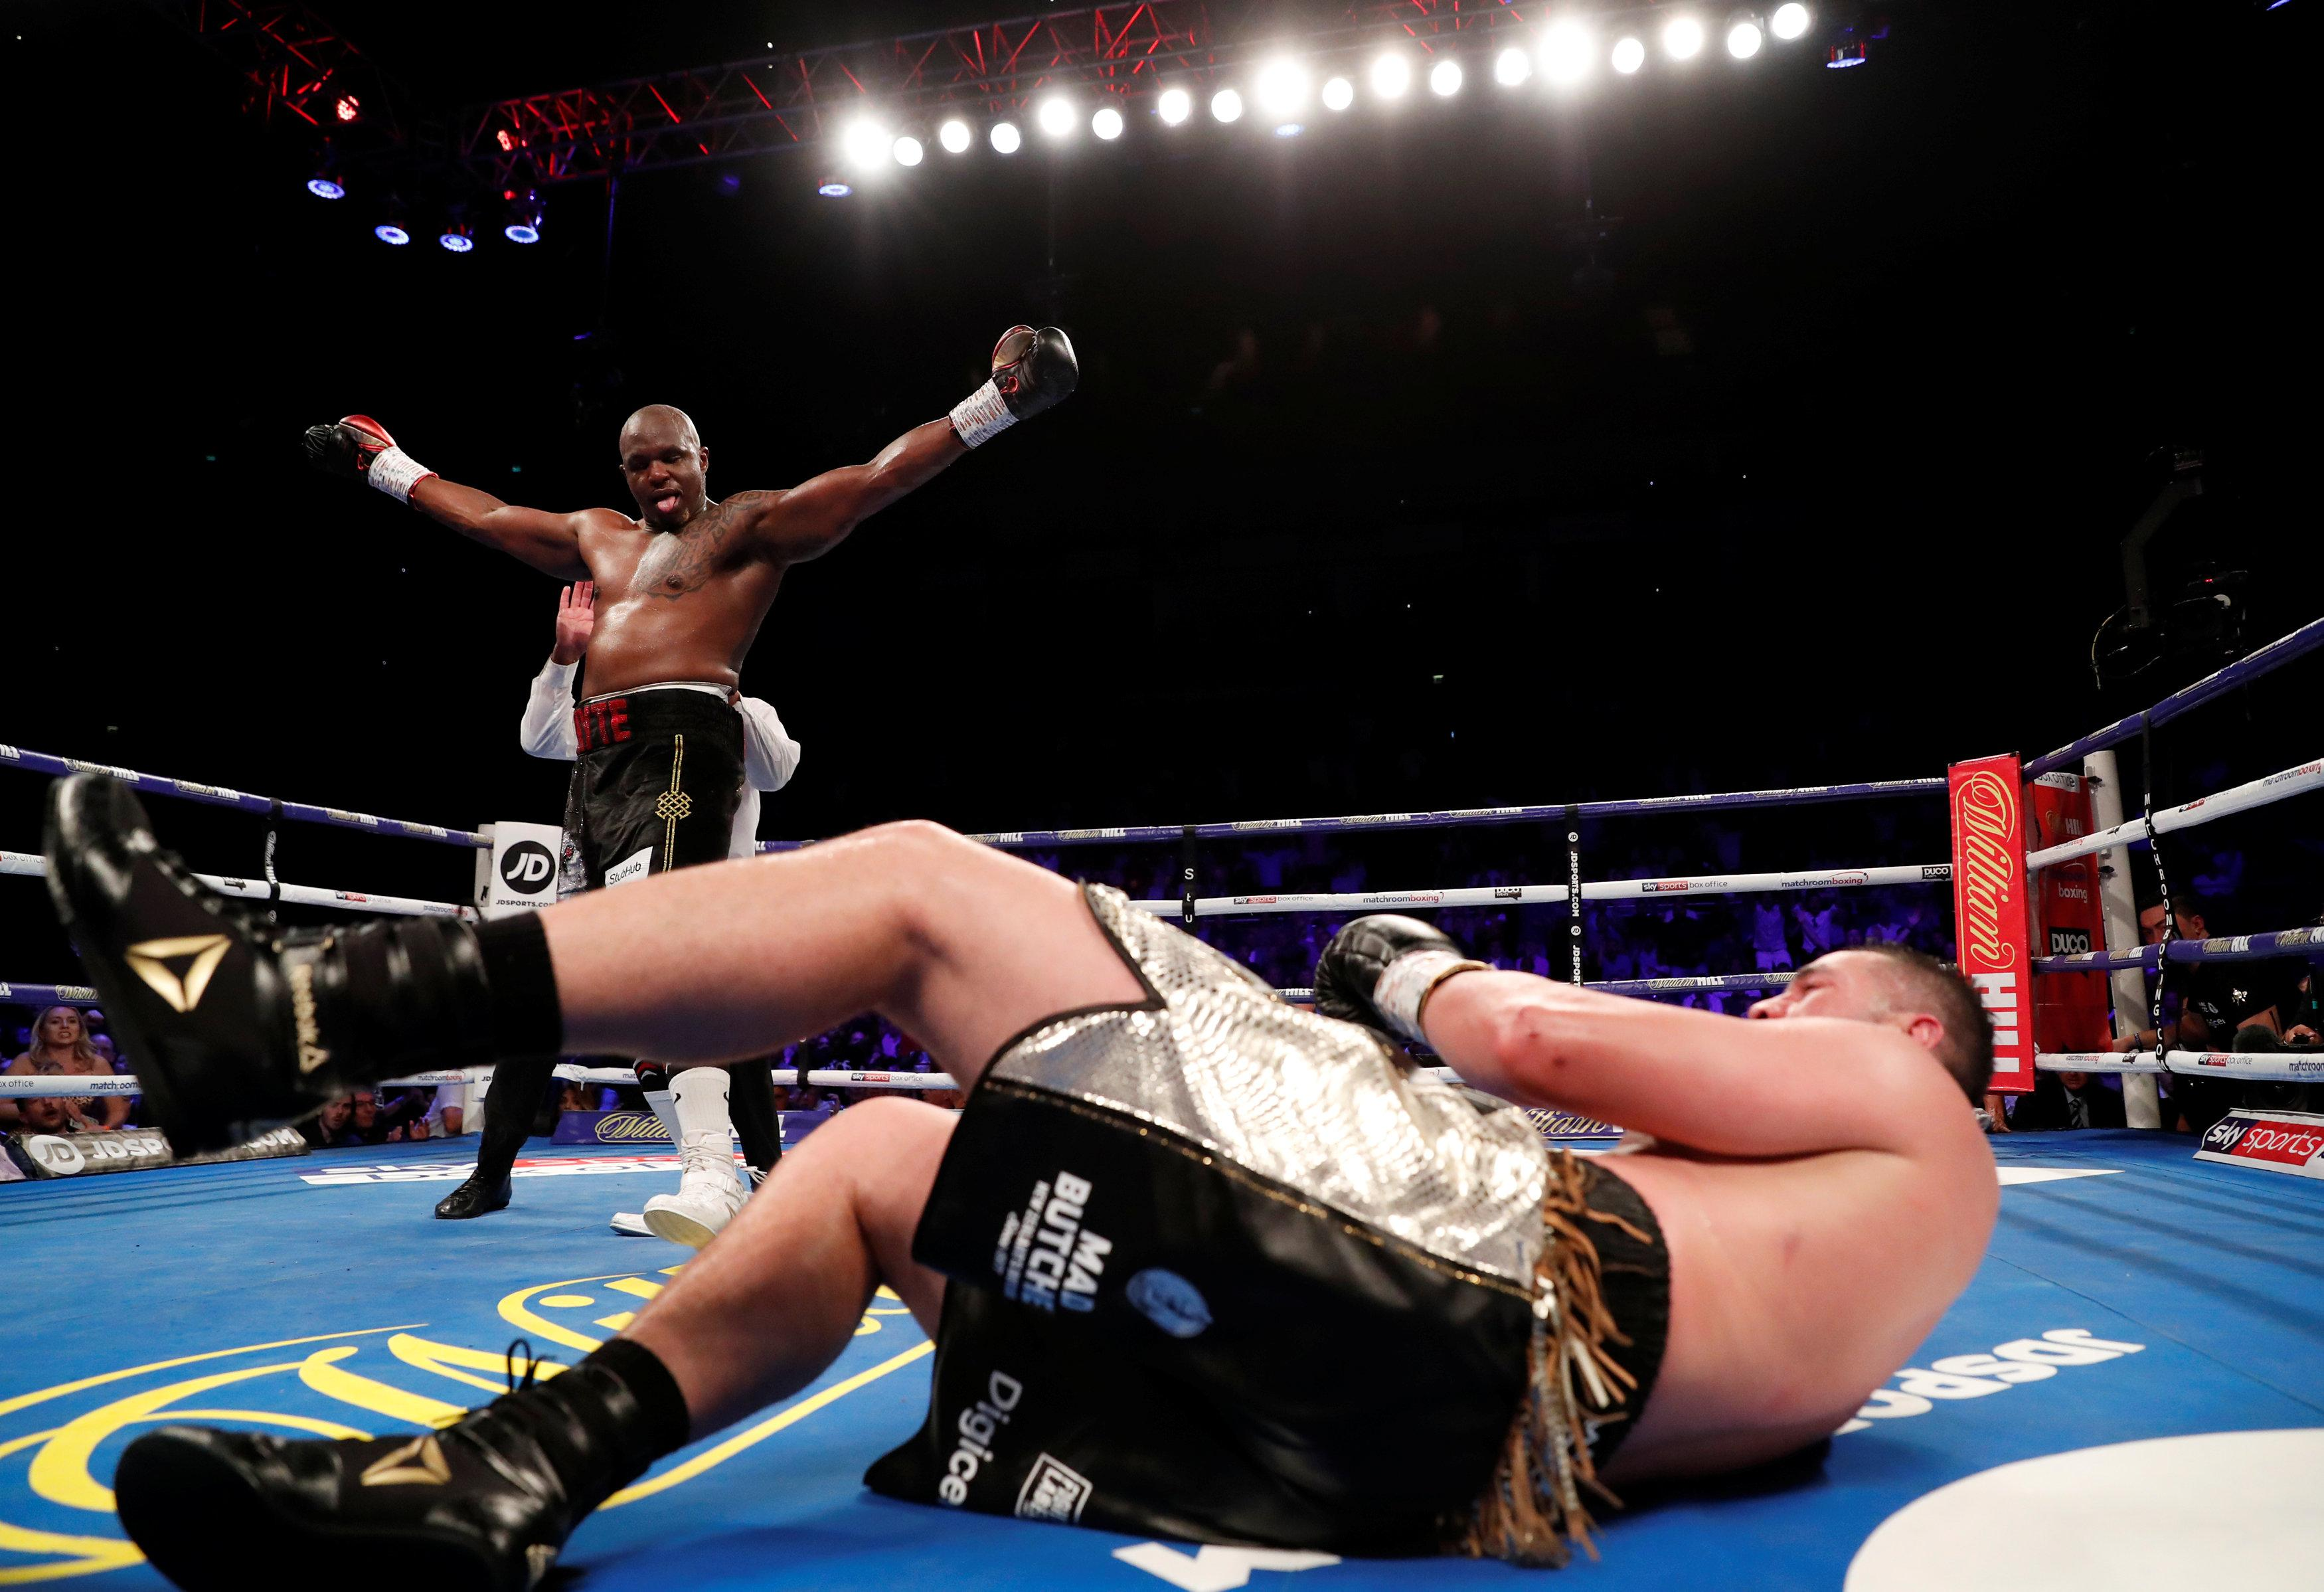 Joseph Parker was floored for the first time in his career